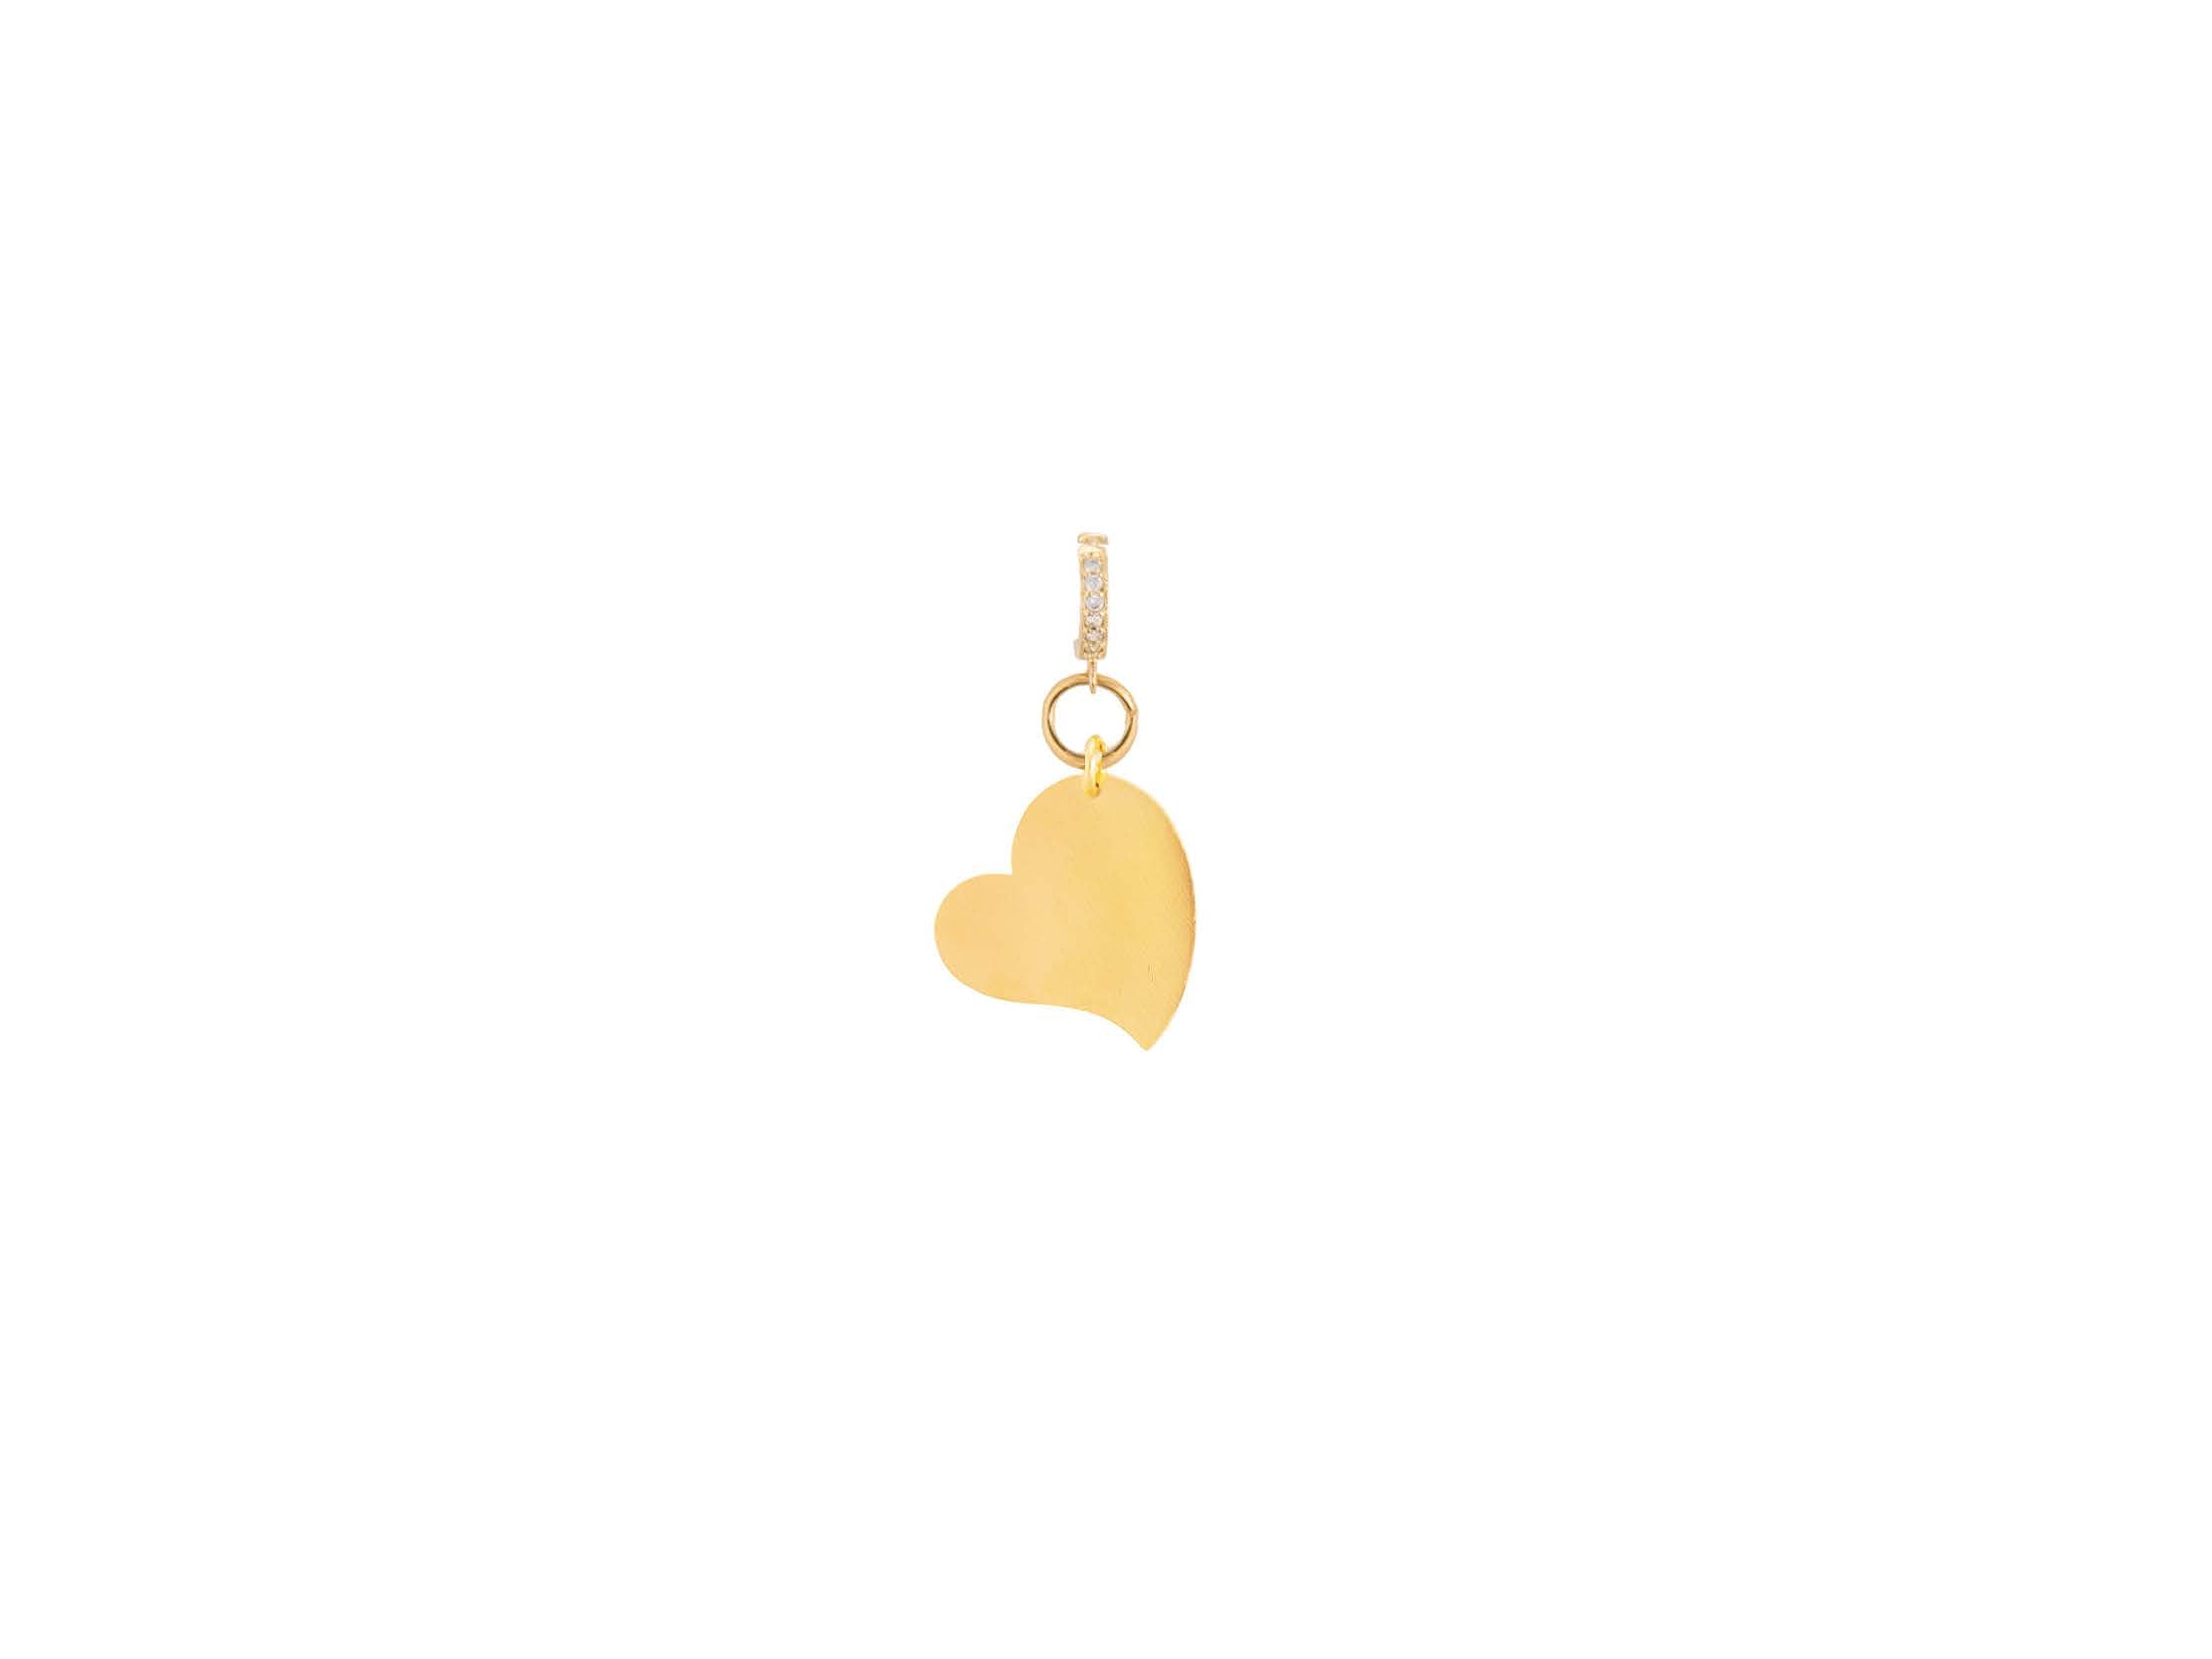 Arp Heart Mini Single Earring / Gold